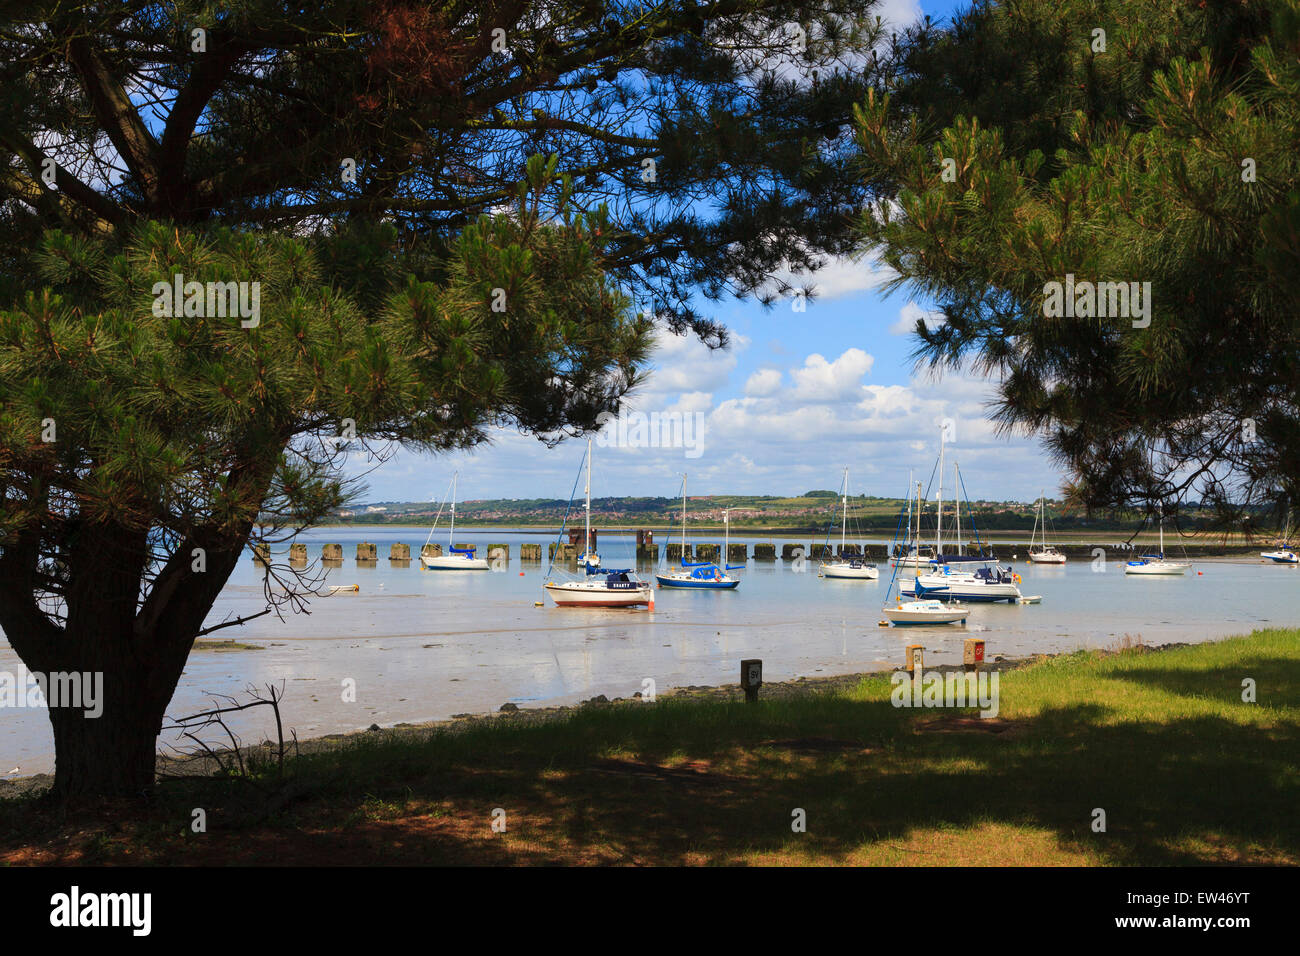 Picturesque picture postcard view of yachts in Langstone Harbour with the remains of the Hayling Billy Bridge Stock Photo